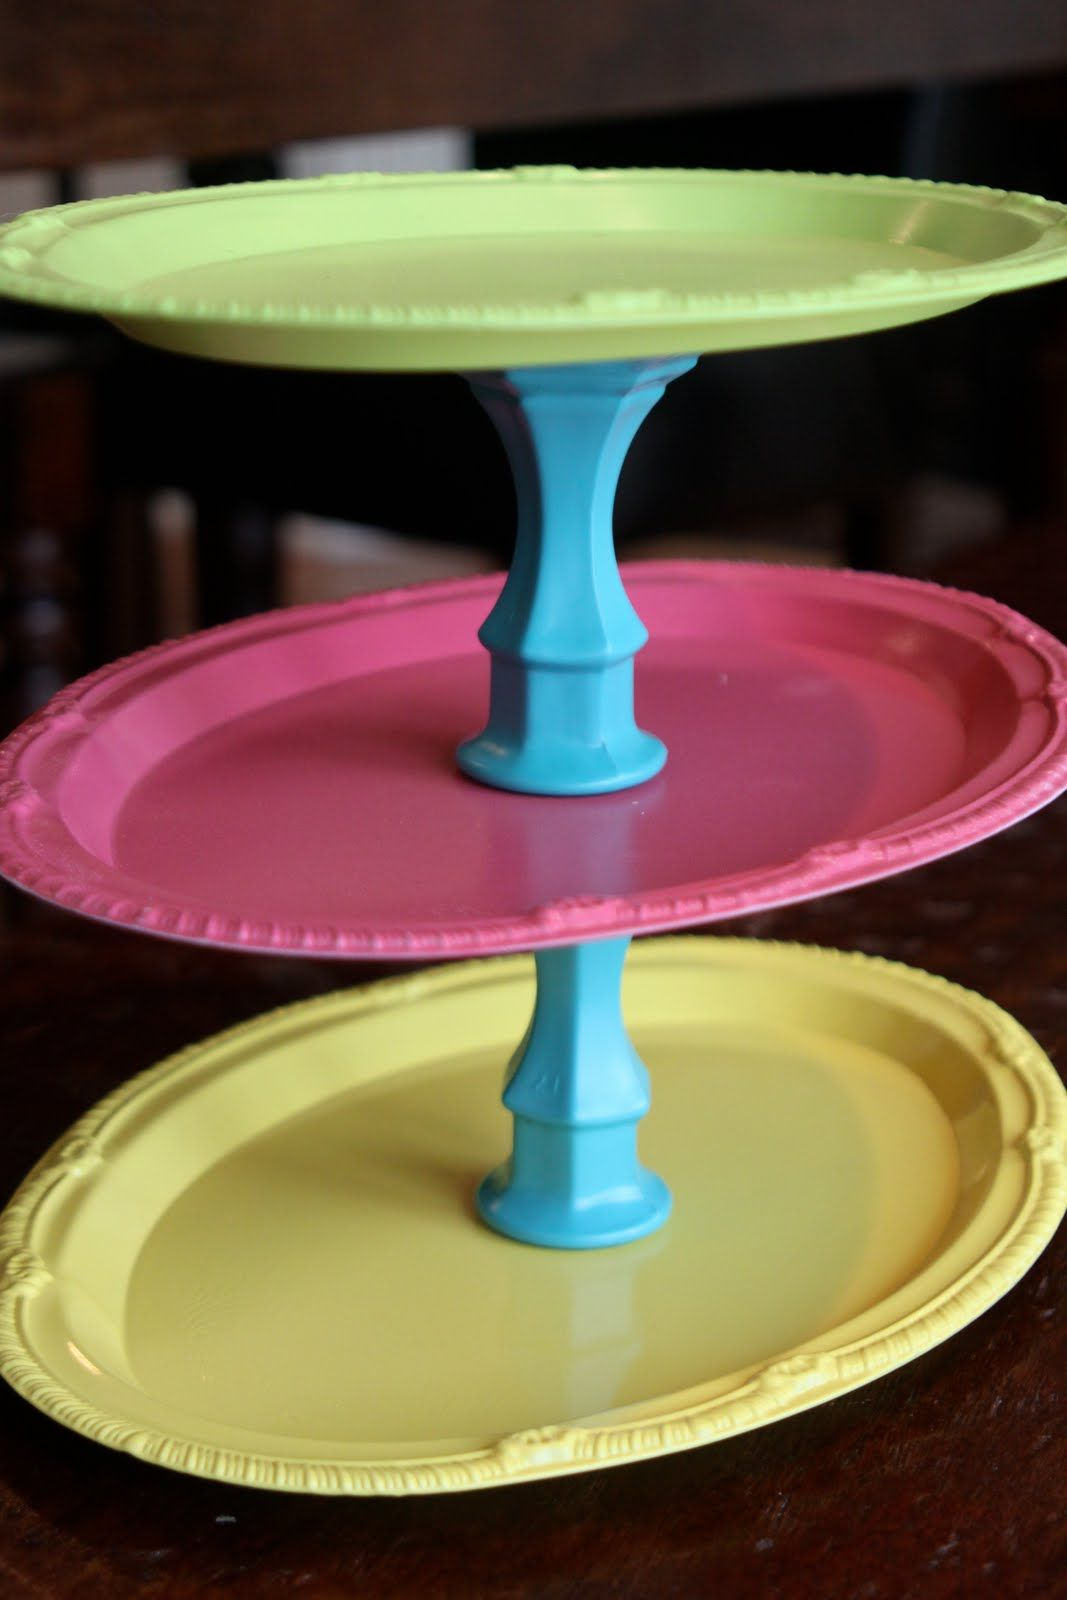 Joyus hope a carnival of tiered trays decor diy pinterest